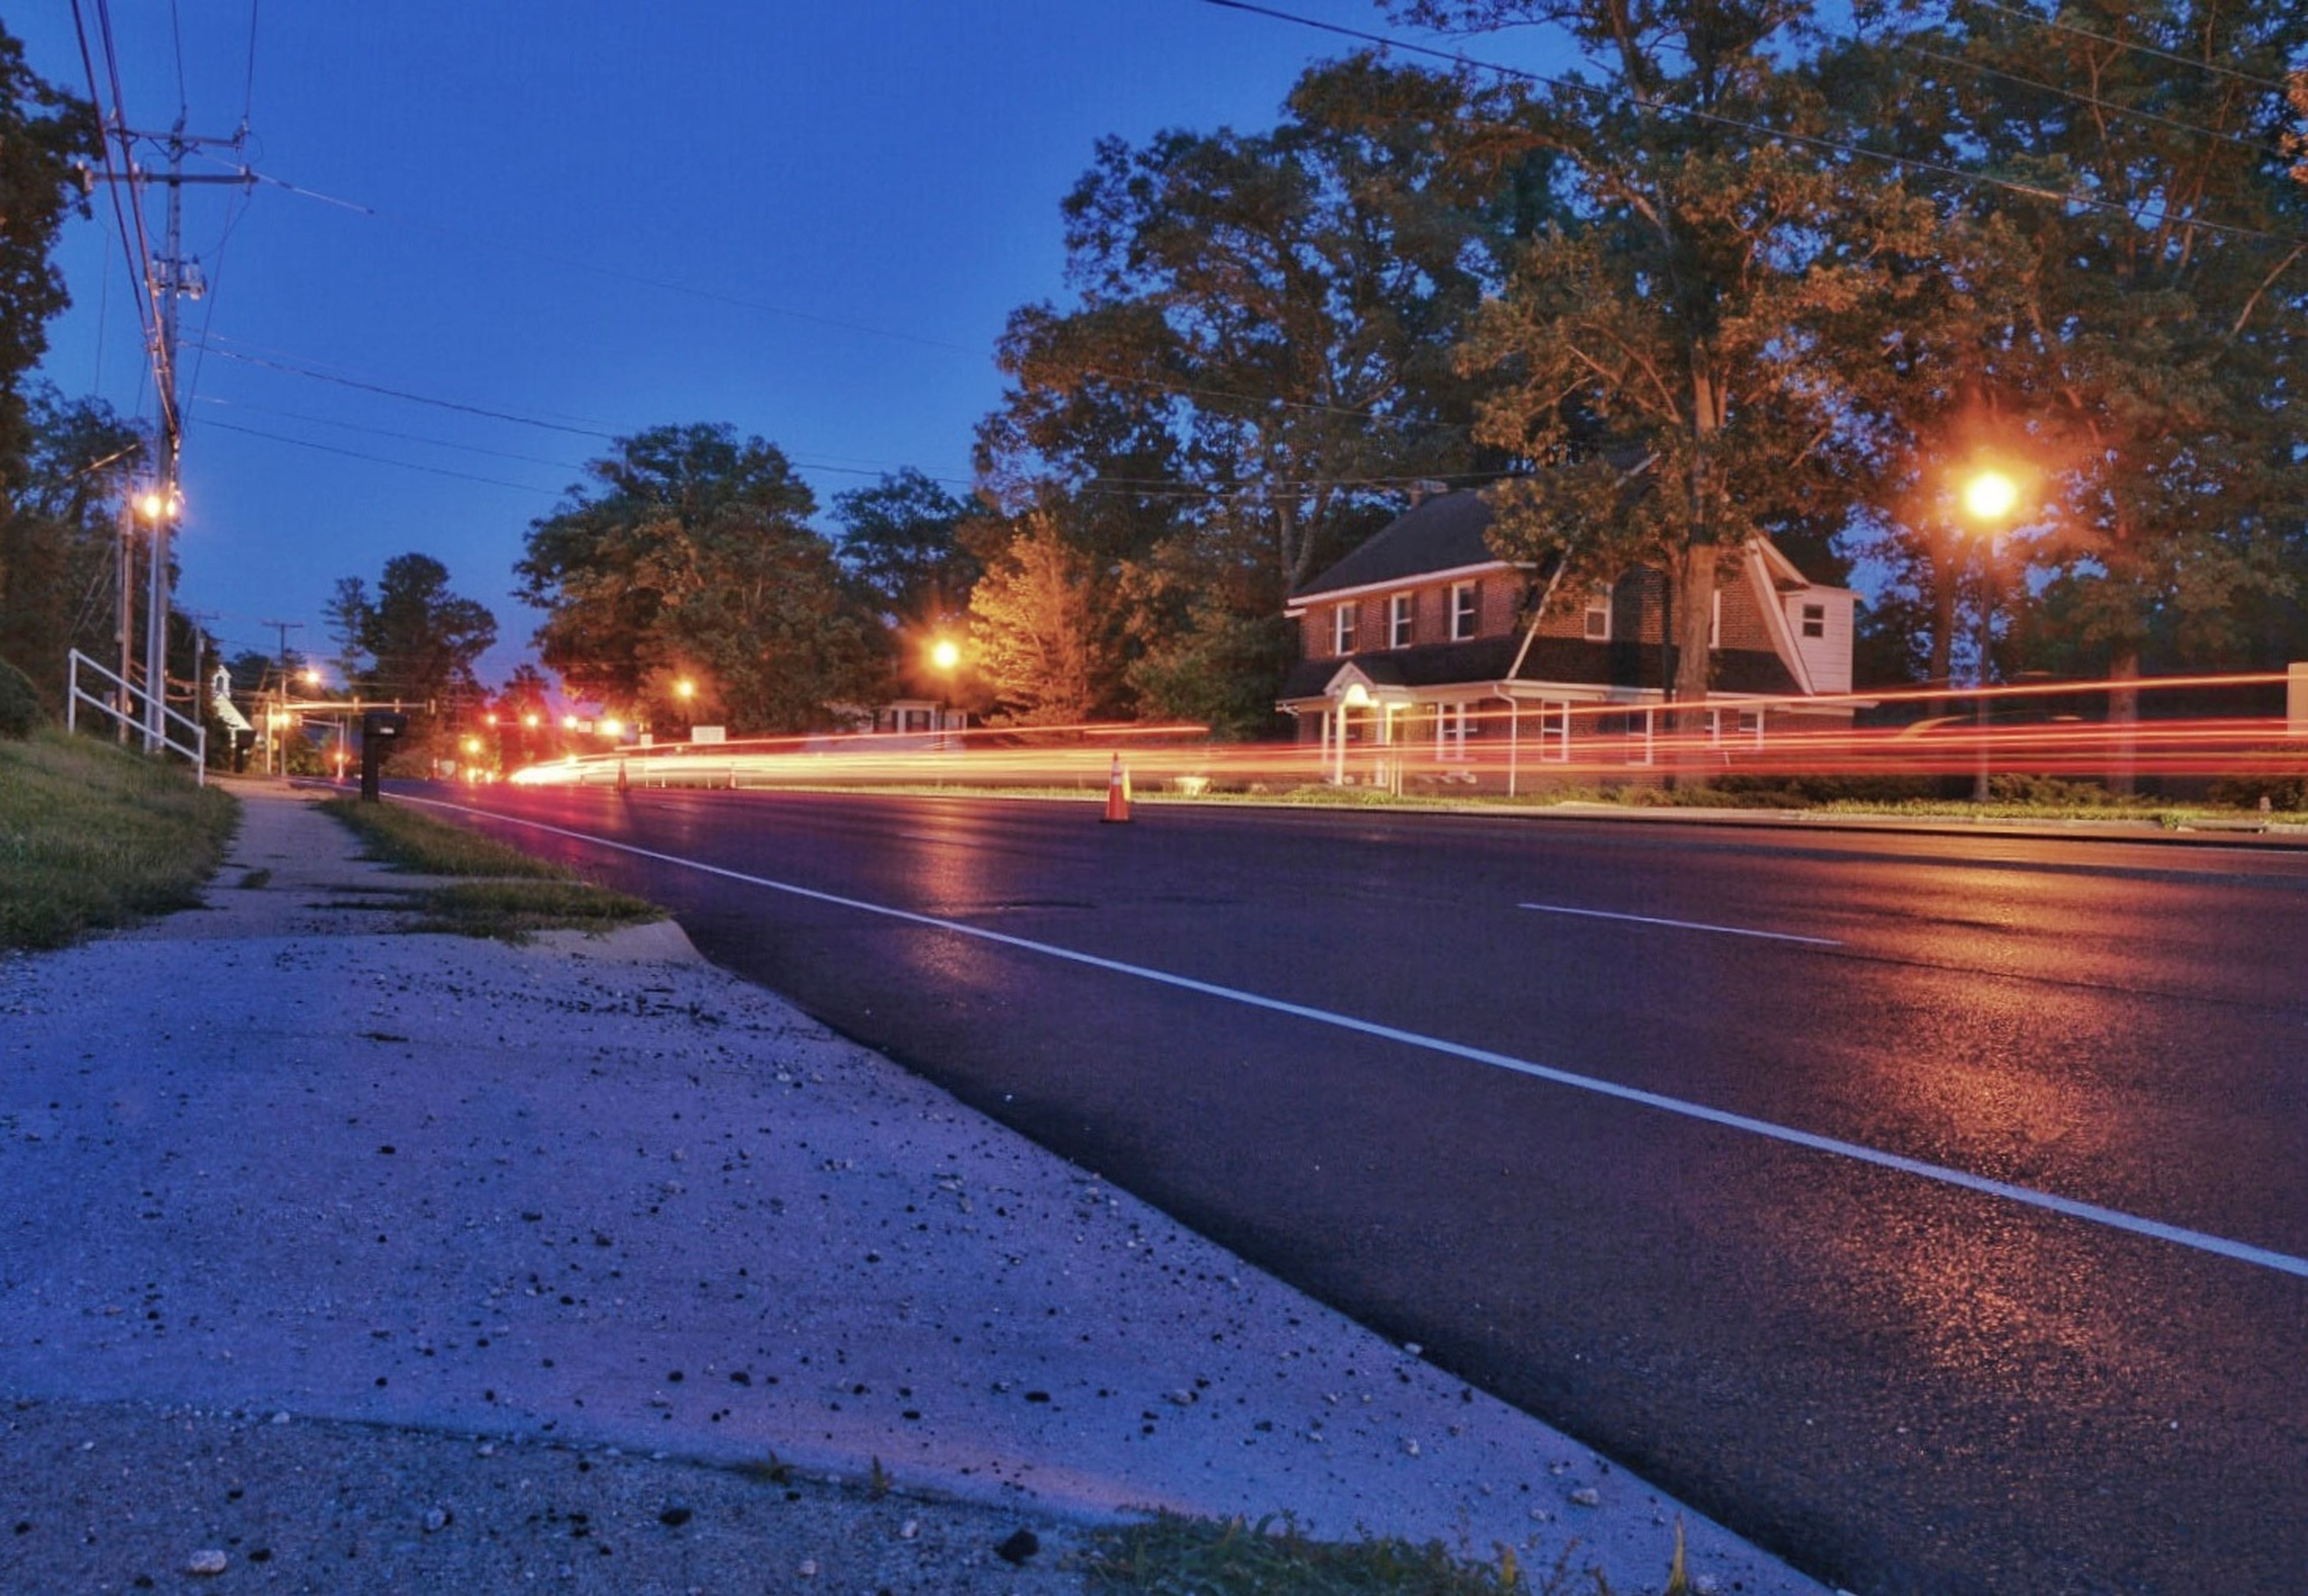 illuminated, night, tree, sky, road, transportation, no people, outdoors, city, building exterior, architecture, speed, motion